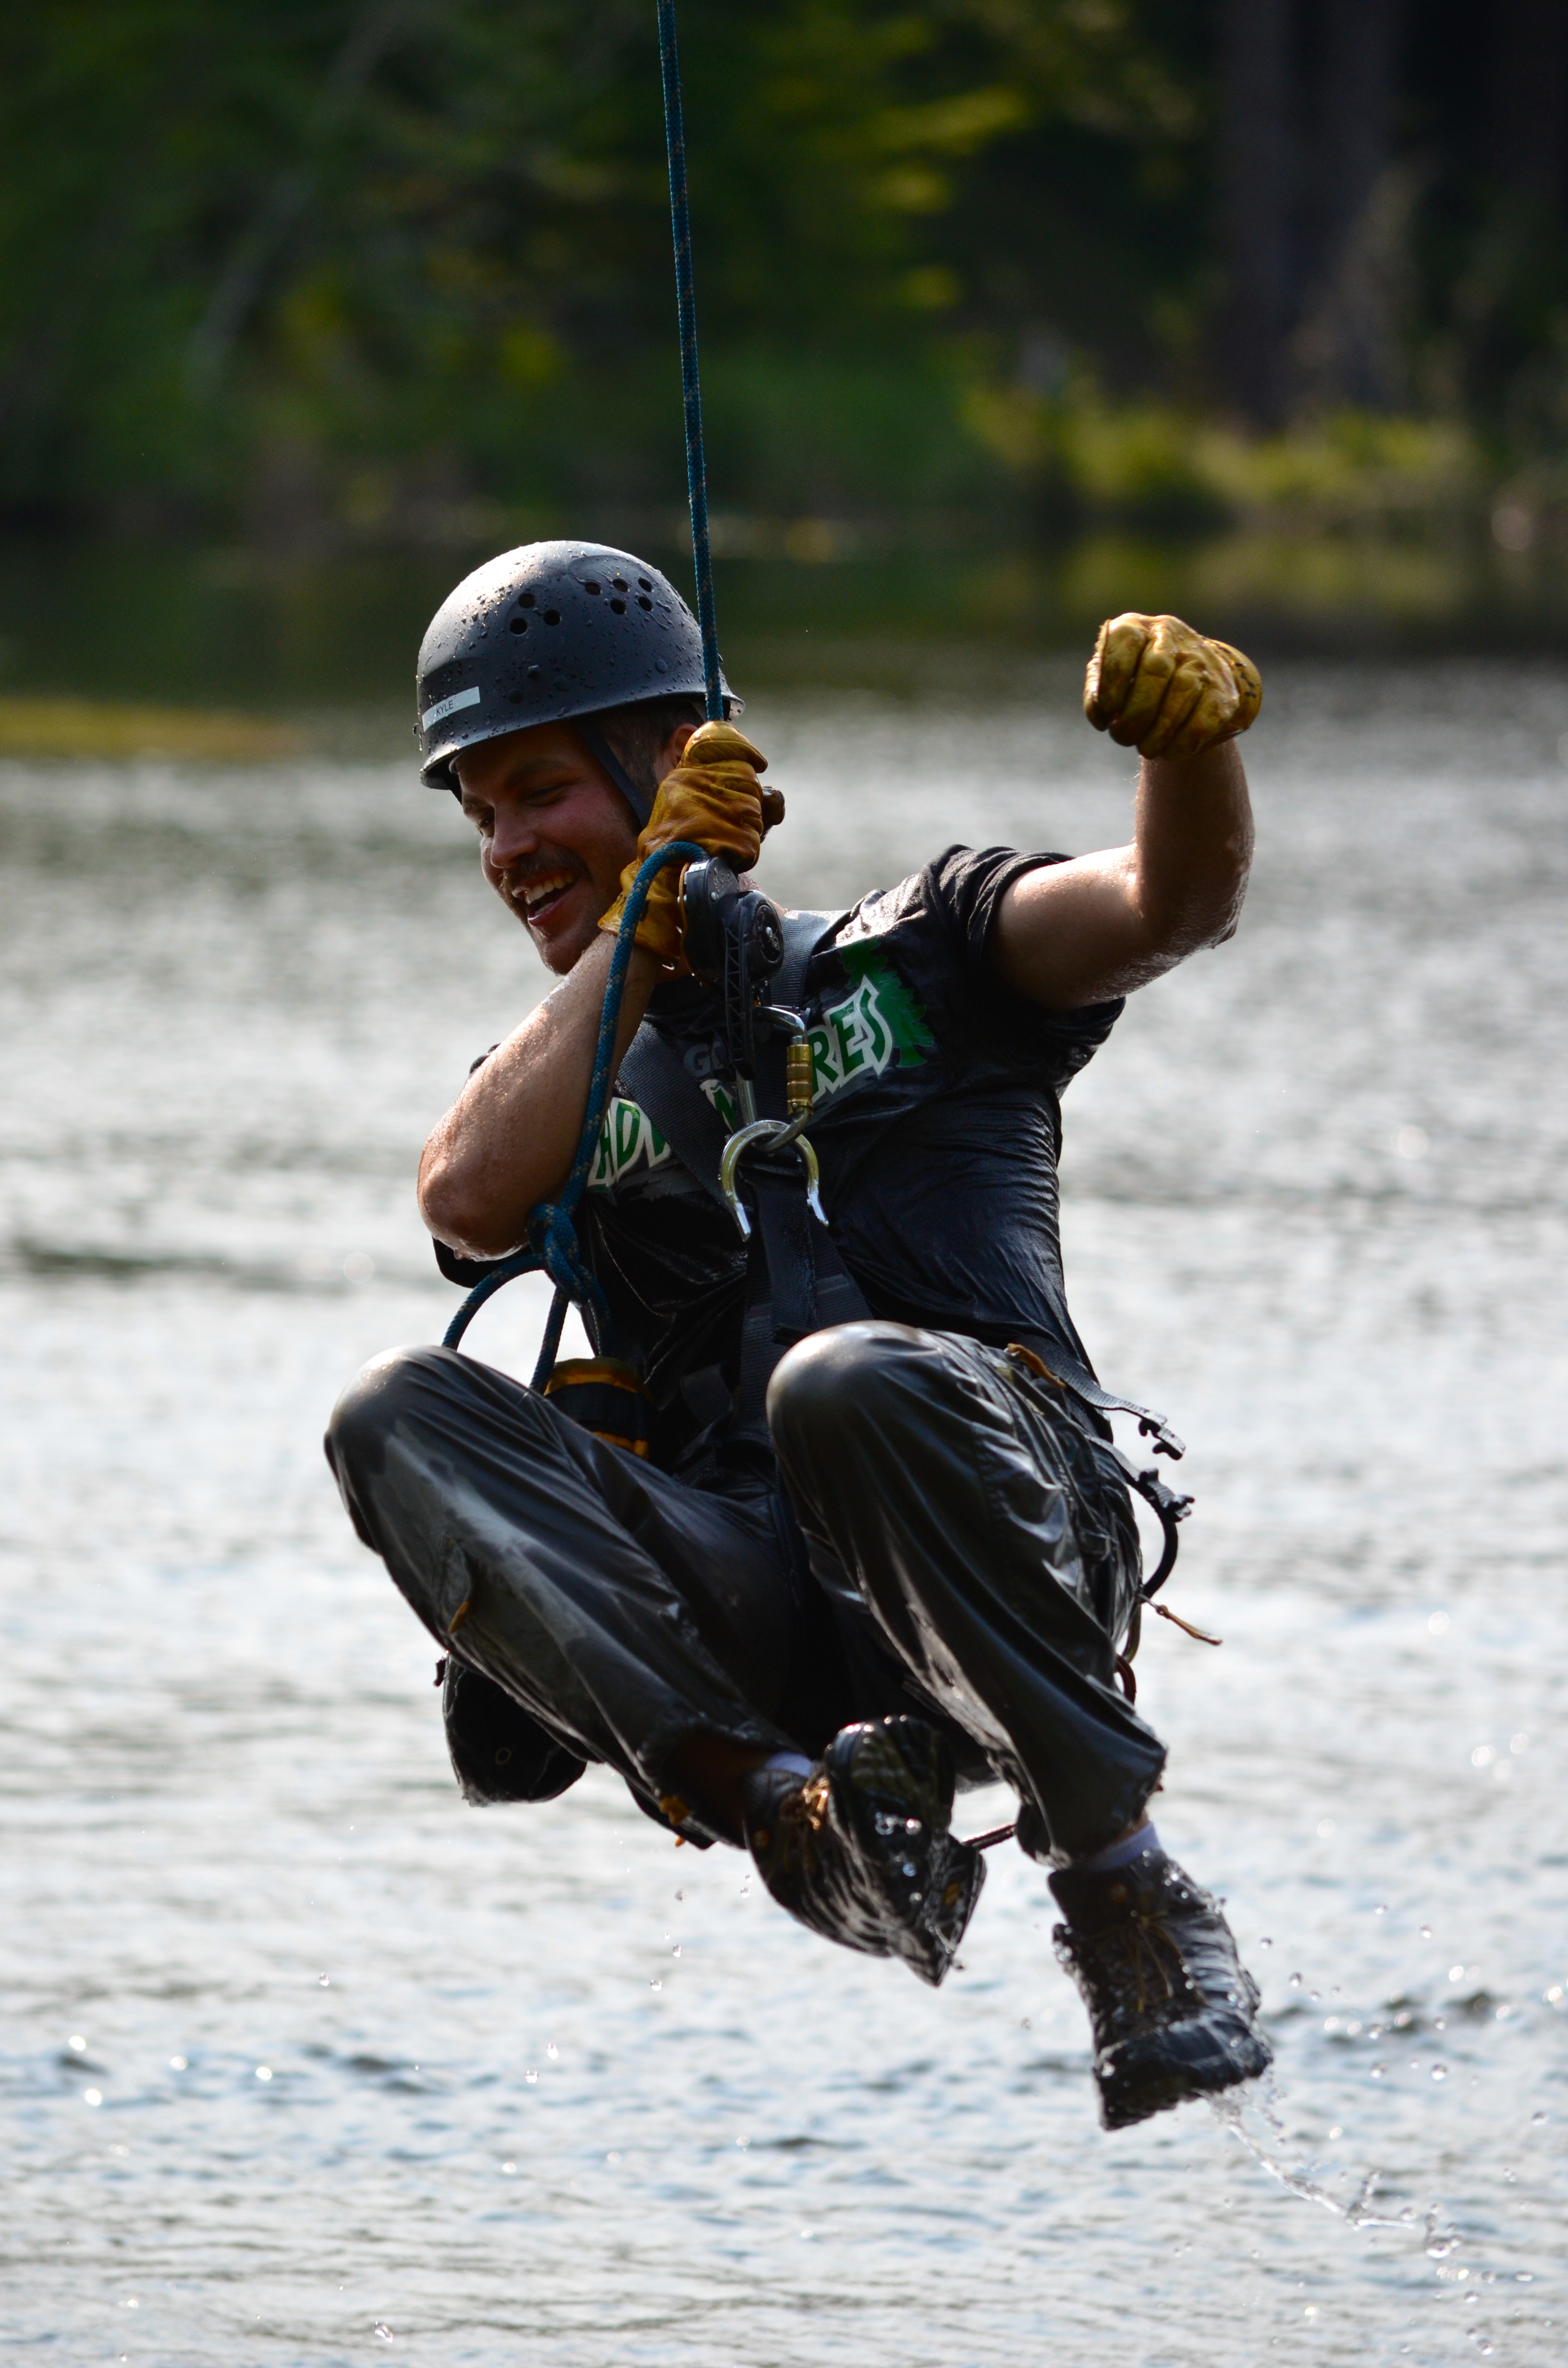 A man ziplines near the water with High Life Adventures